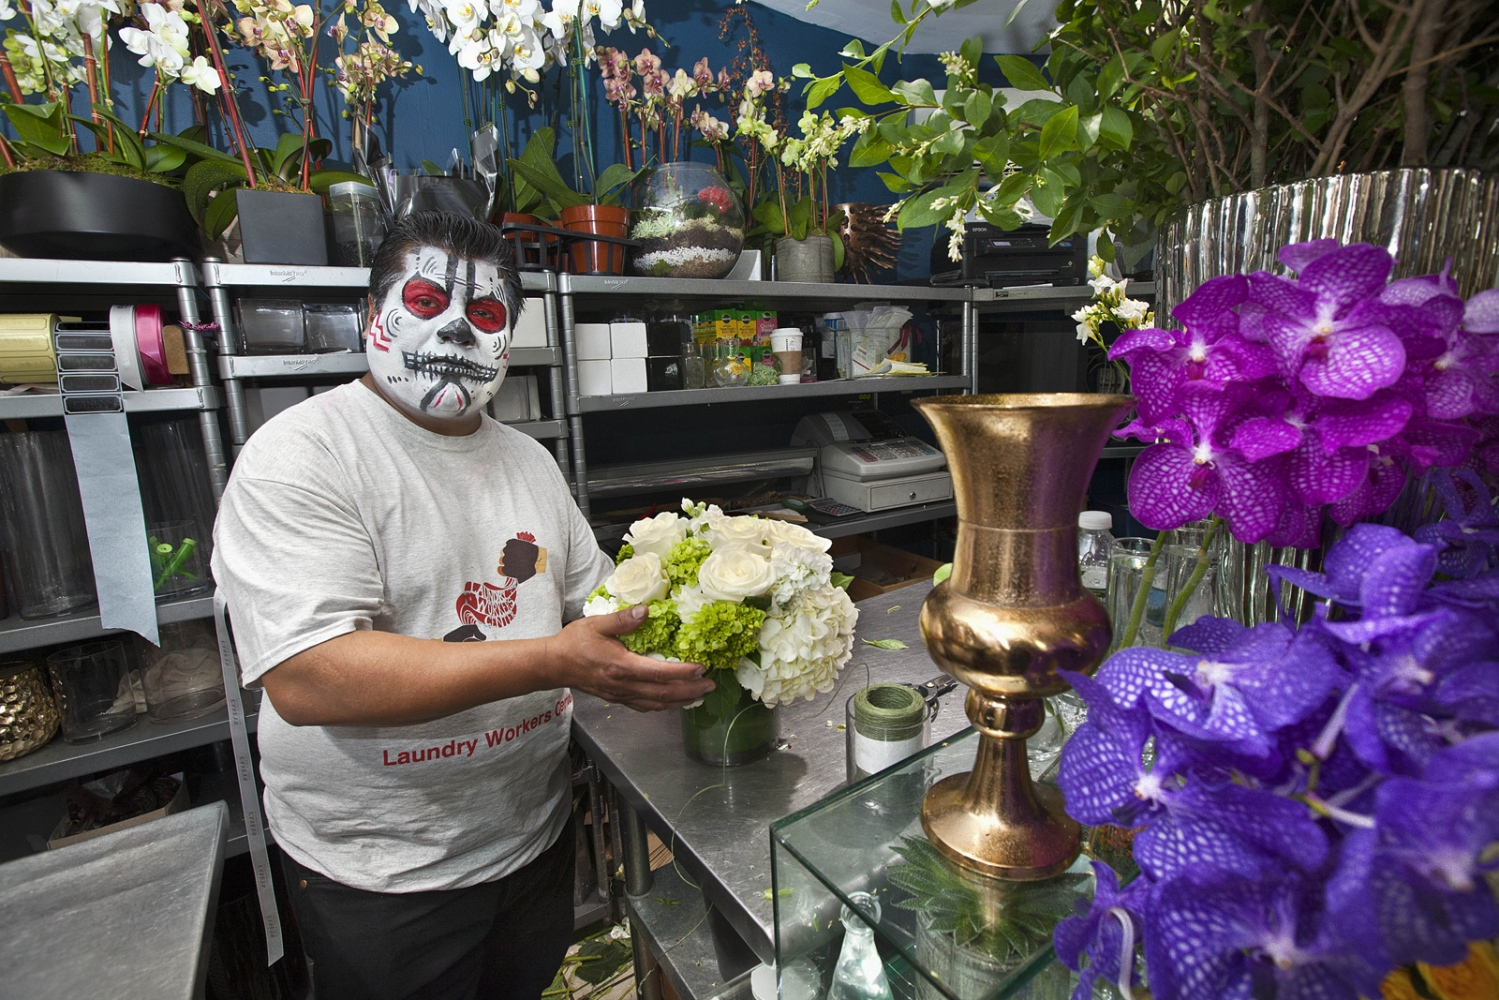 Francisco. Mexico. 9 years living in the United States     Francisco is part of the new campaign by the organization Laundry Workers Center to improve florist worker's conditions and wages. These workers that work as florists in Manhattan, submitted to harsh weather conditions such as extreme cold in the winter and extreme hot in the summer. They are also enclosed with gas fumes that keeps the conditions of the flowers but is hazardous to their health.